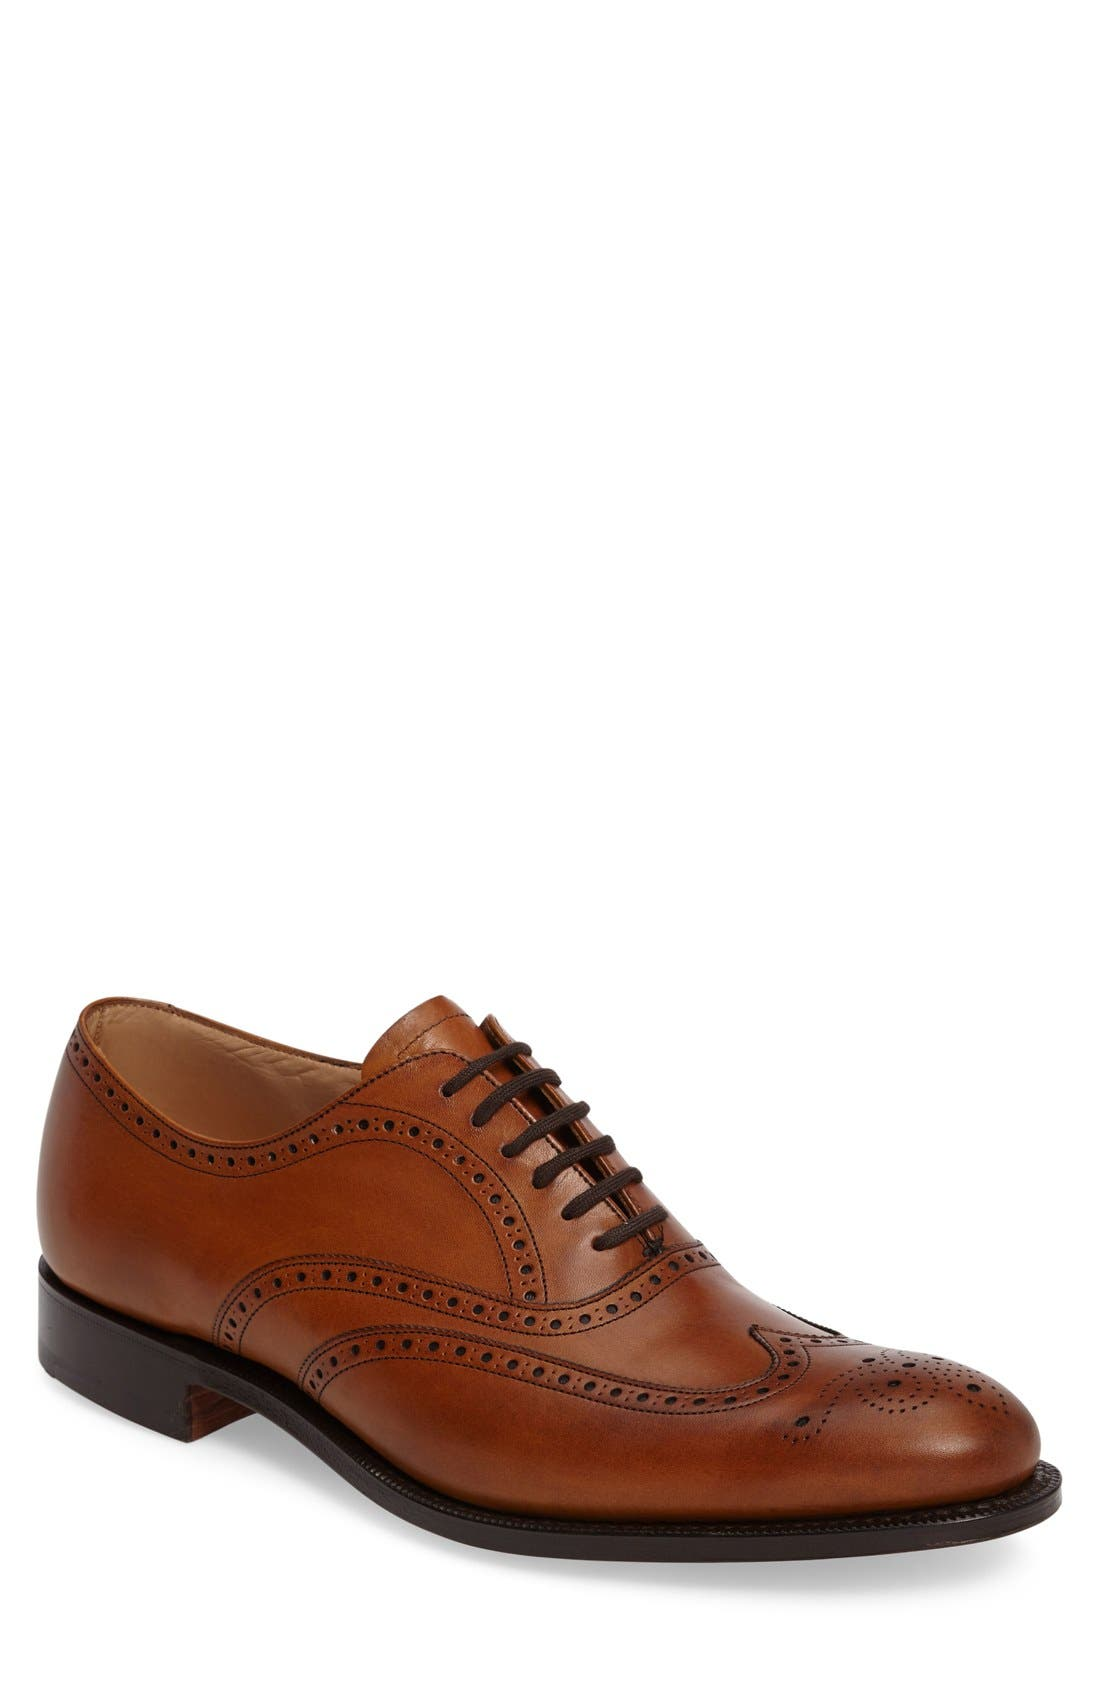 'Berlin' Wingtip Oxford,                         Main,                         color, Brown Leather